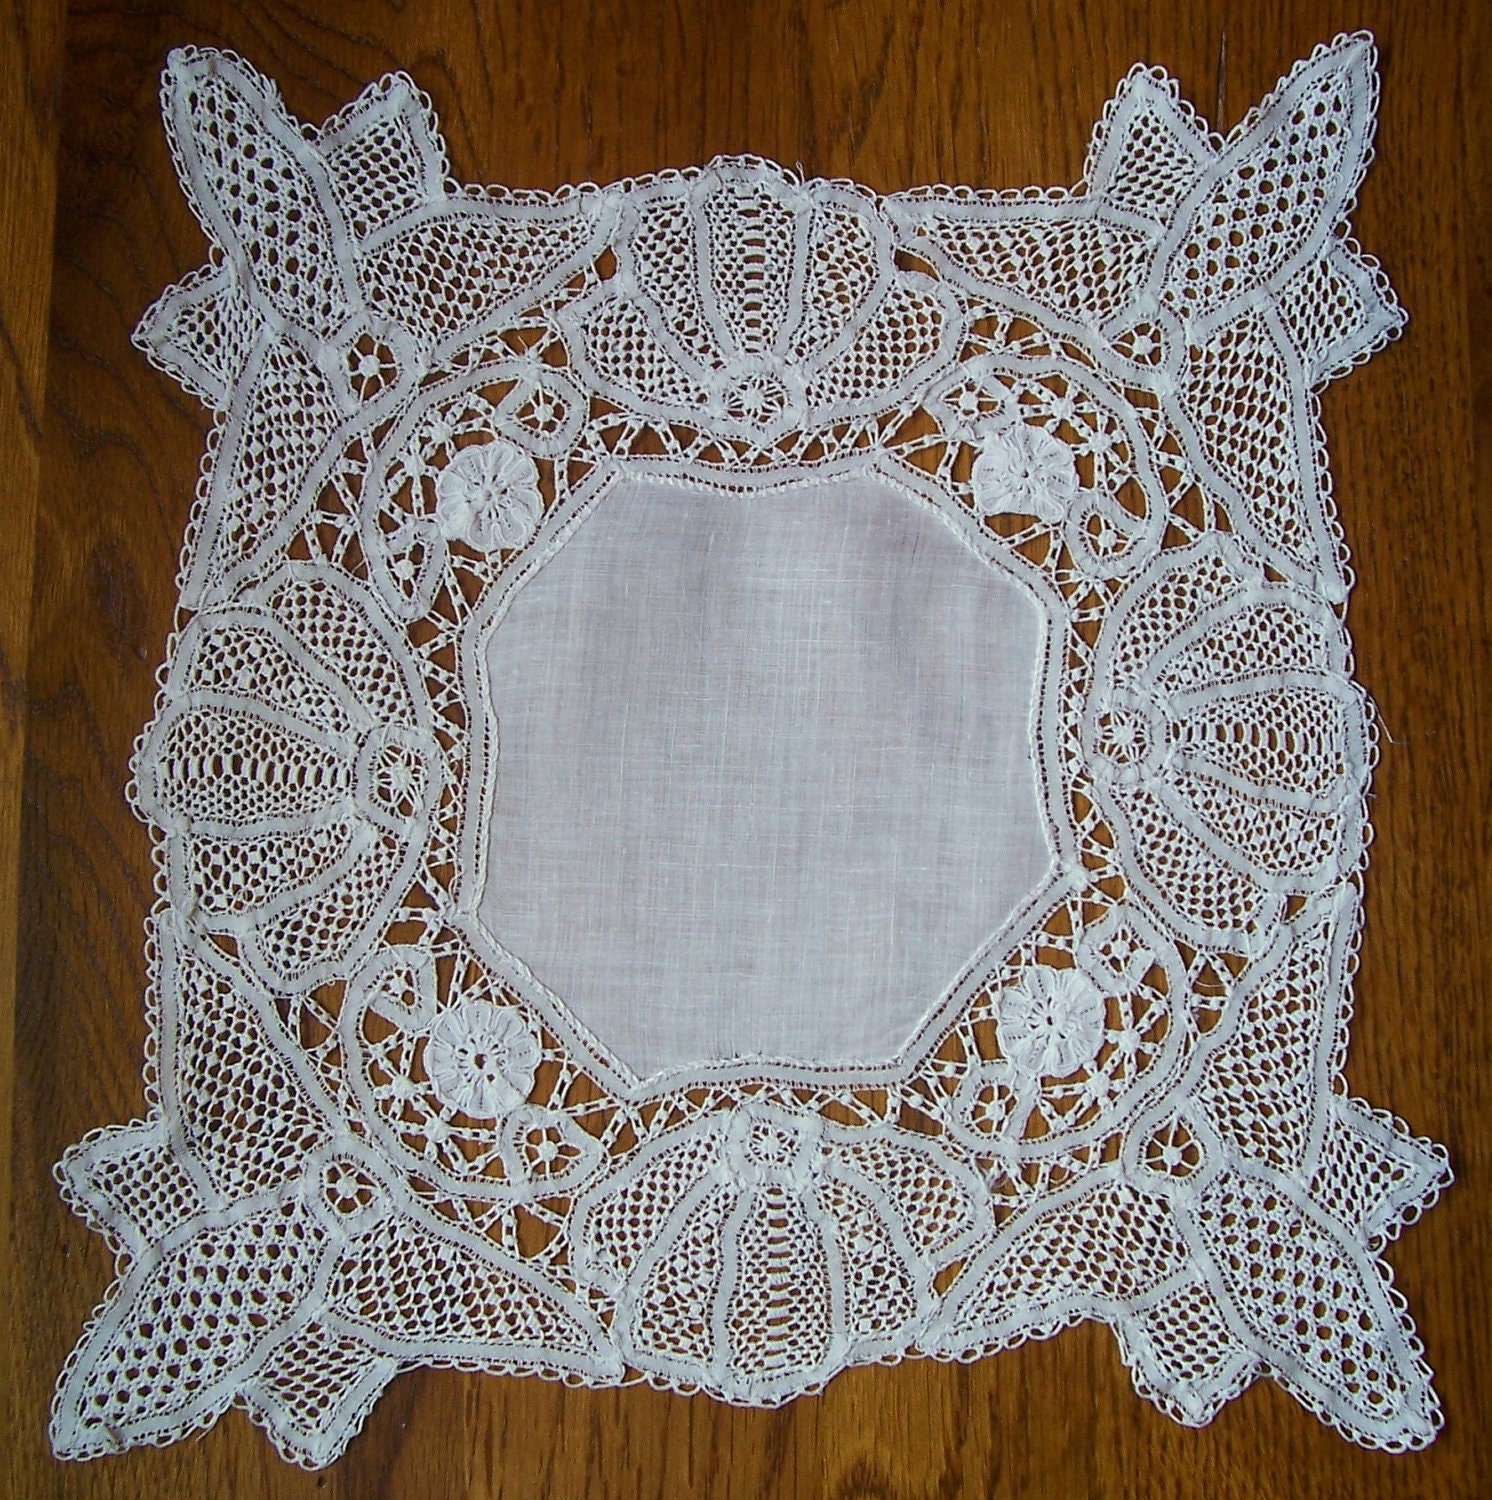 Antique White Lace Wedding Hanky - Hankie Handkerchief - HankyLady